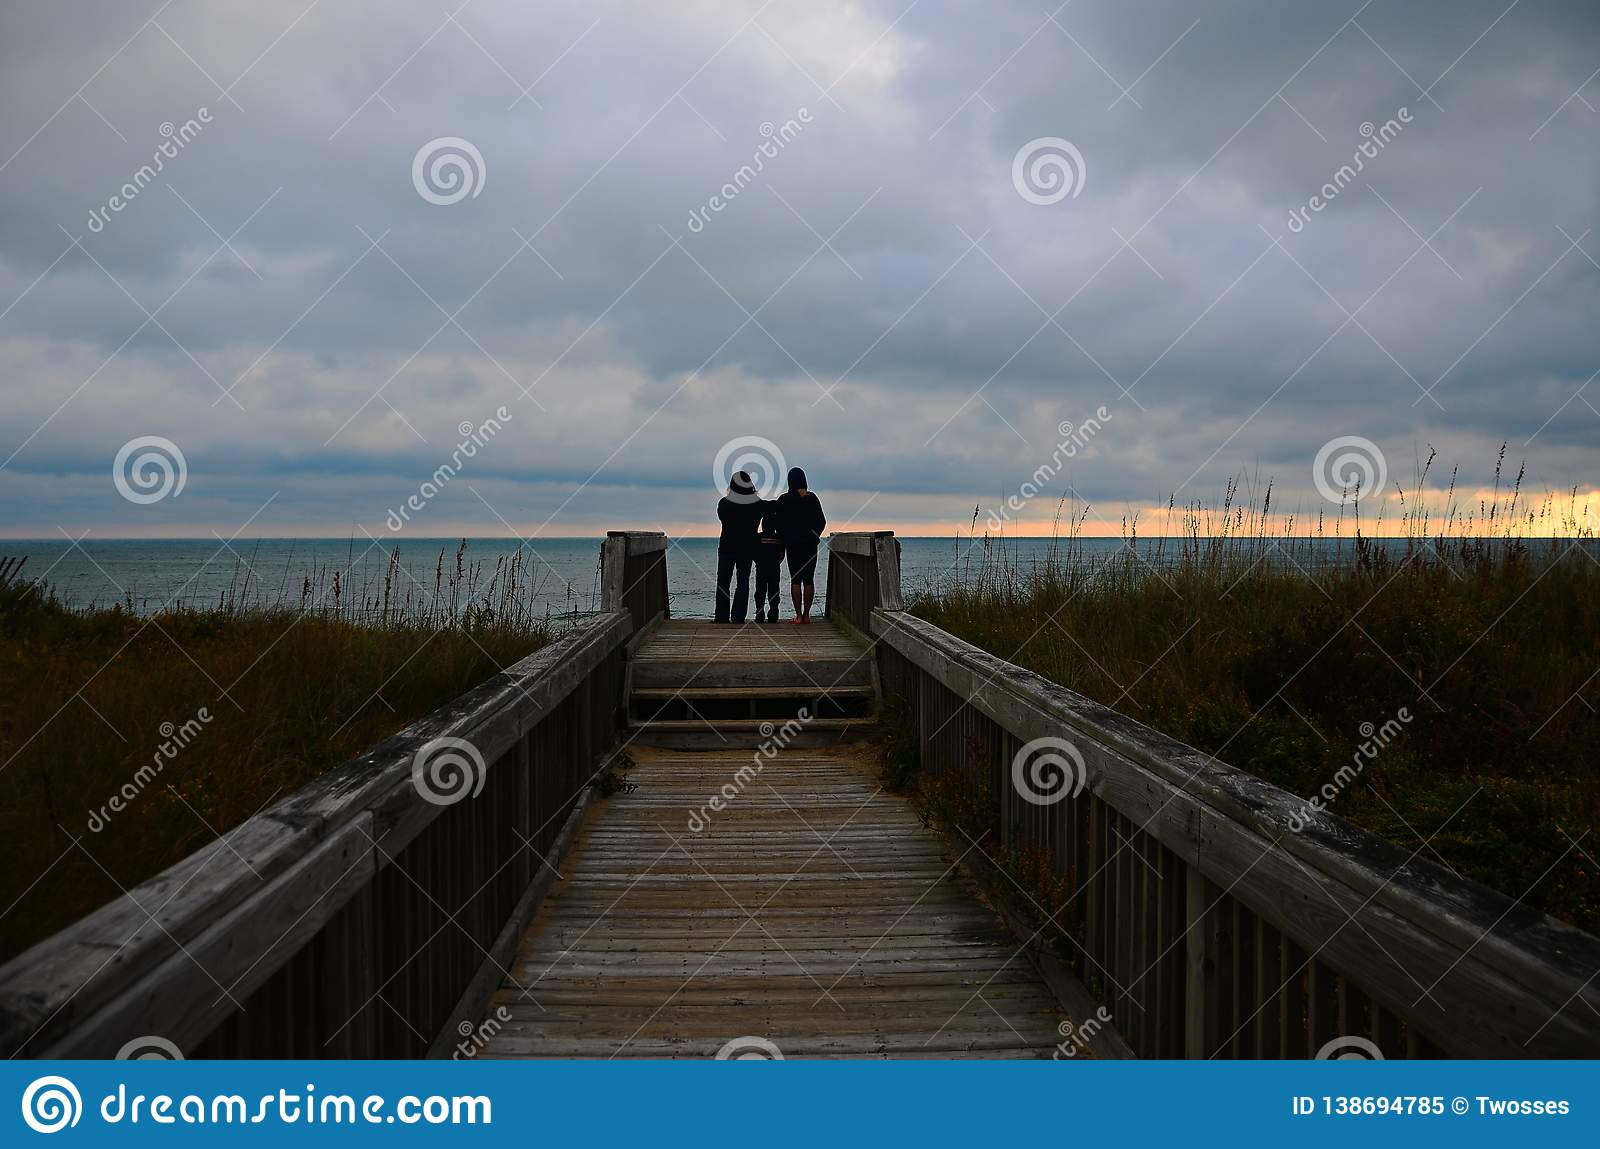 A family watches a sunrise at the beach